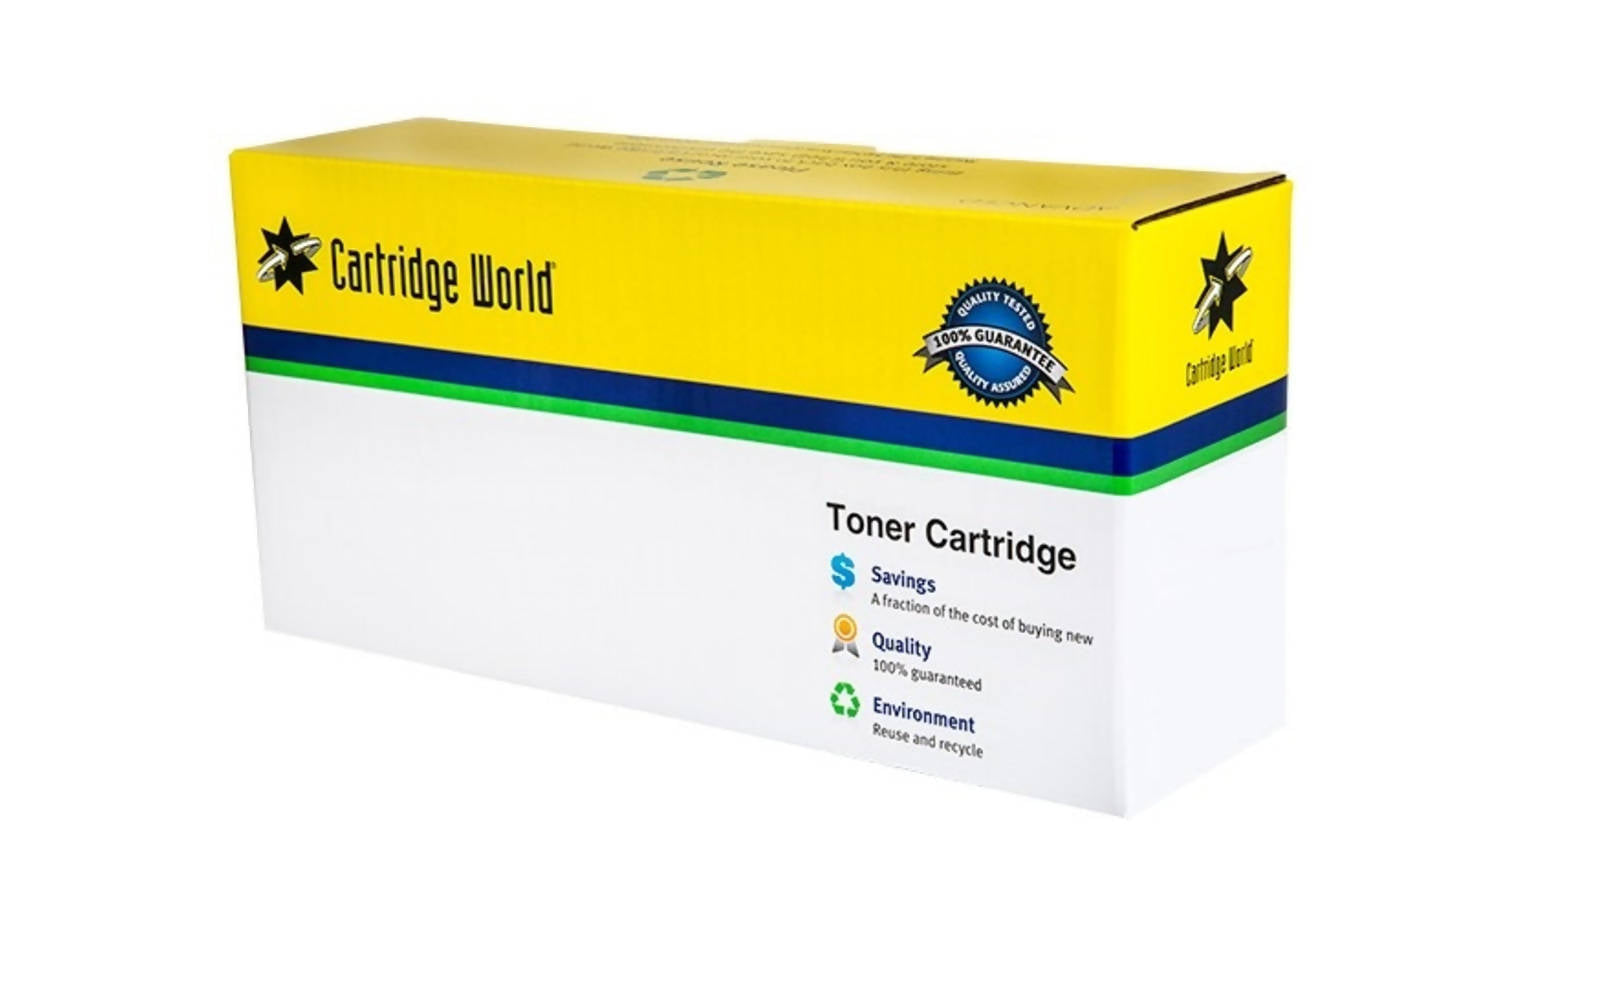 Cartridge World Replacement for HP #78A CE278A Black Toner Cartridge (CWH-CE278A) - 2000 Pages